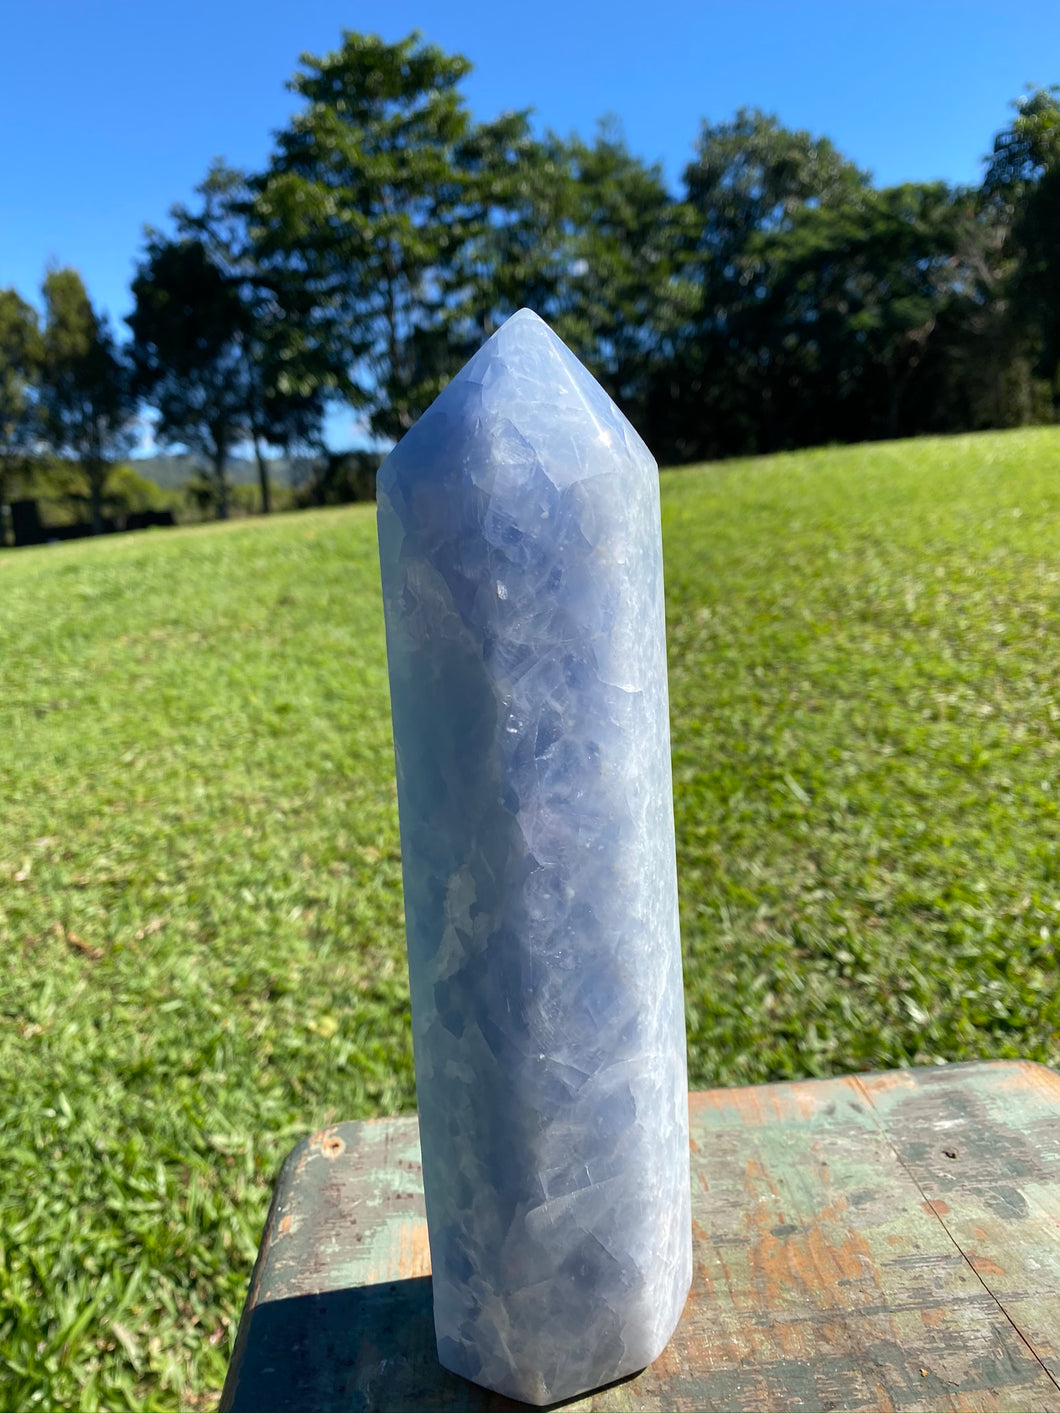 Blue Calcite natural stone tower -  home décor or unique bedroom display